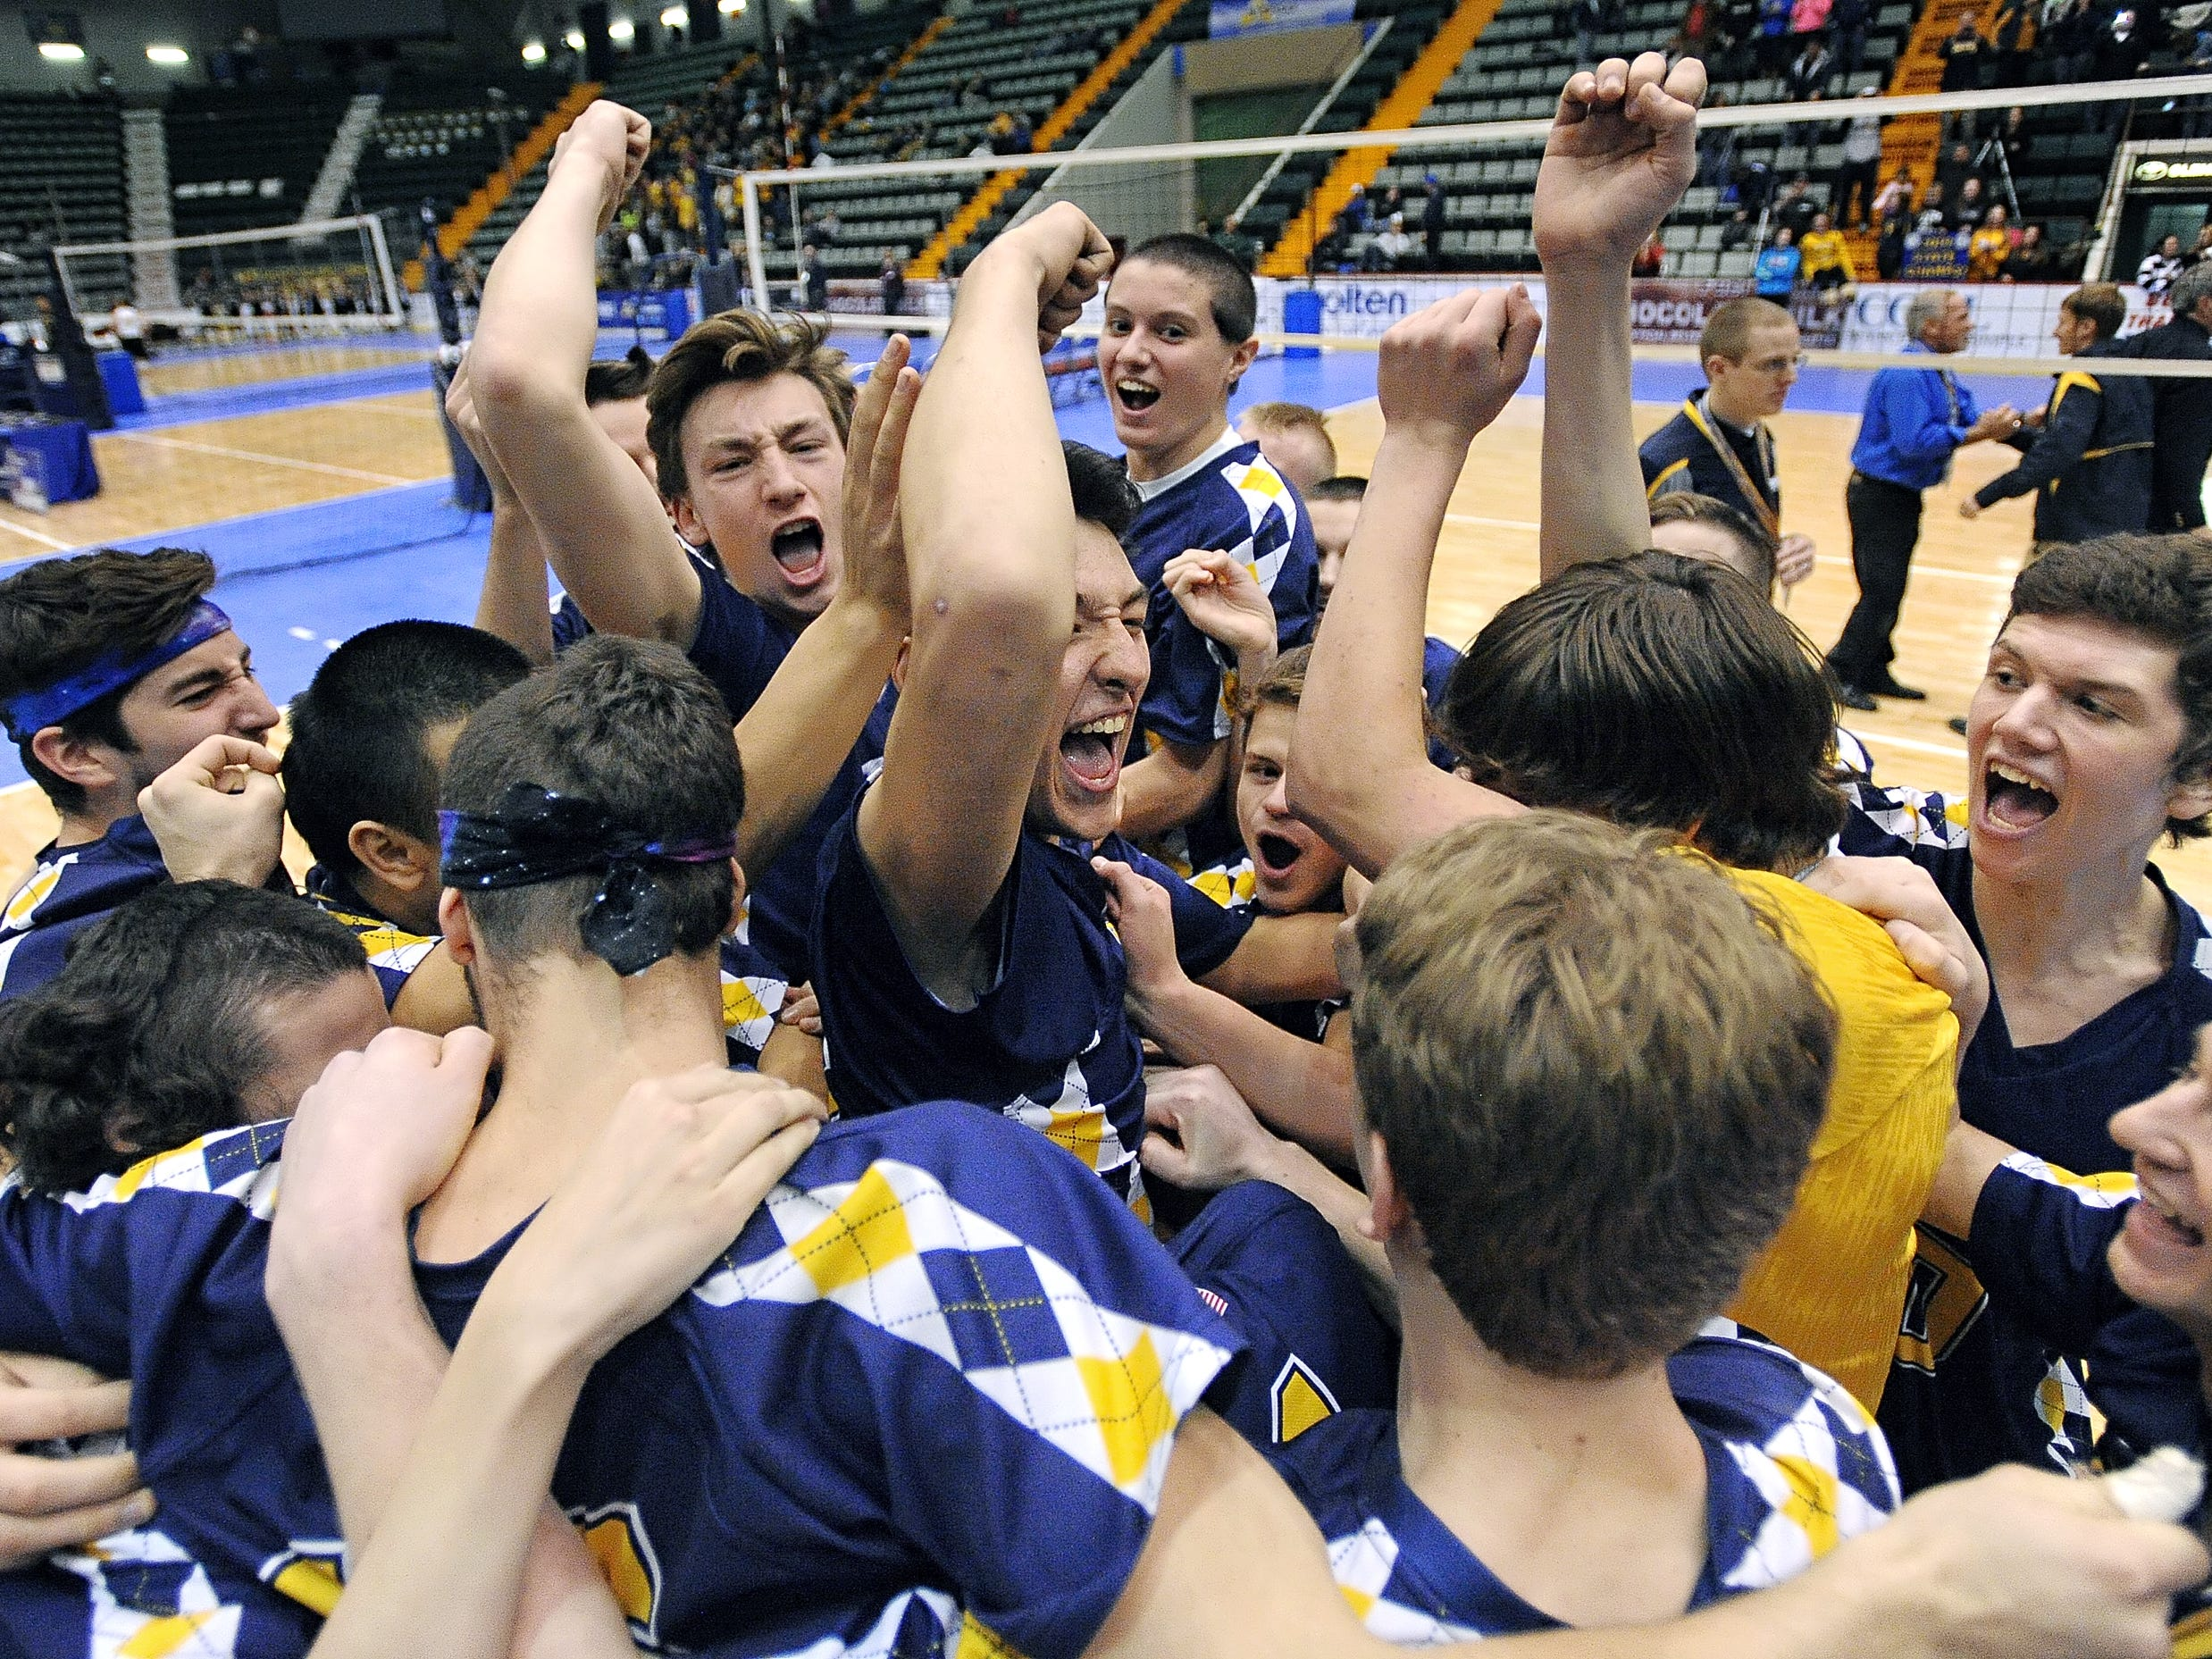 Victor players celebrate following championship point in the Division II final at the NYSPHSAA Boy's Volleyball Championships held at the Glens Falls Civic Center on Friday. Victor beat Eastport-South Manor in three sets (25-12, 25-21, 25-18). ADRIAN KRAUS